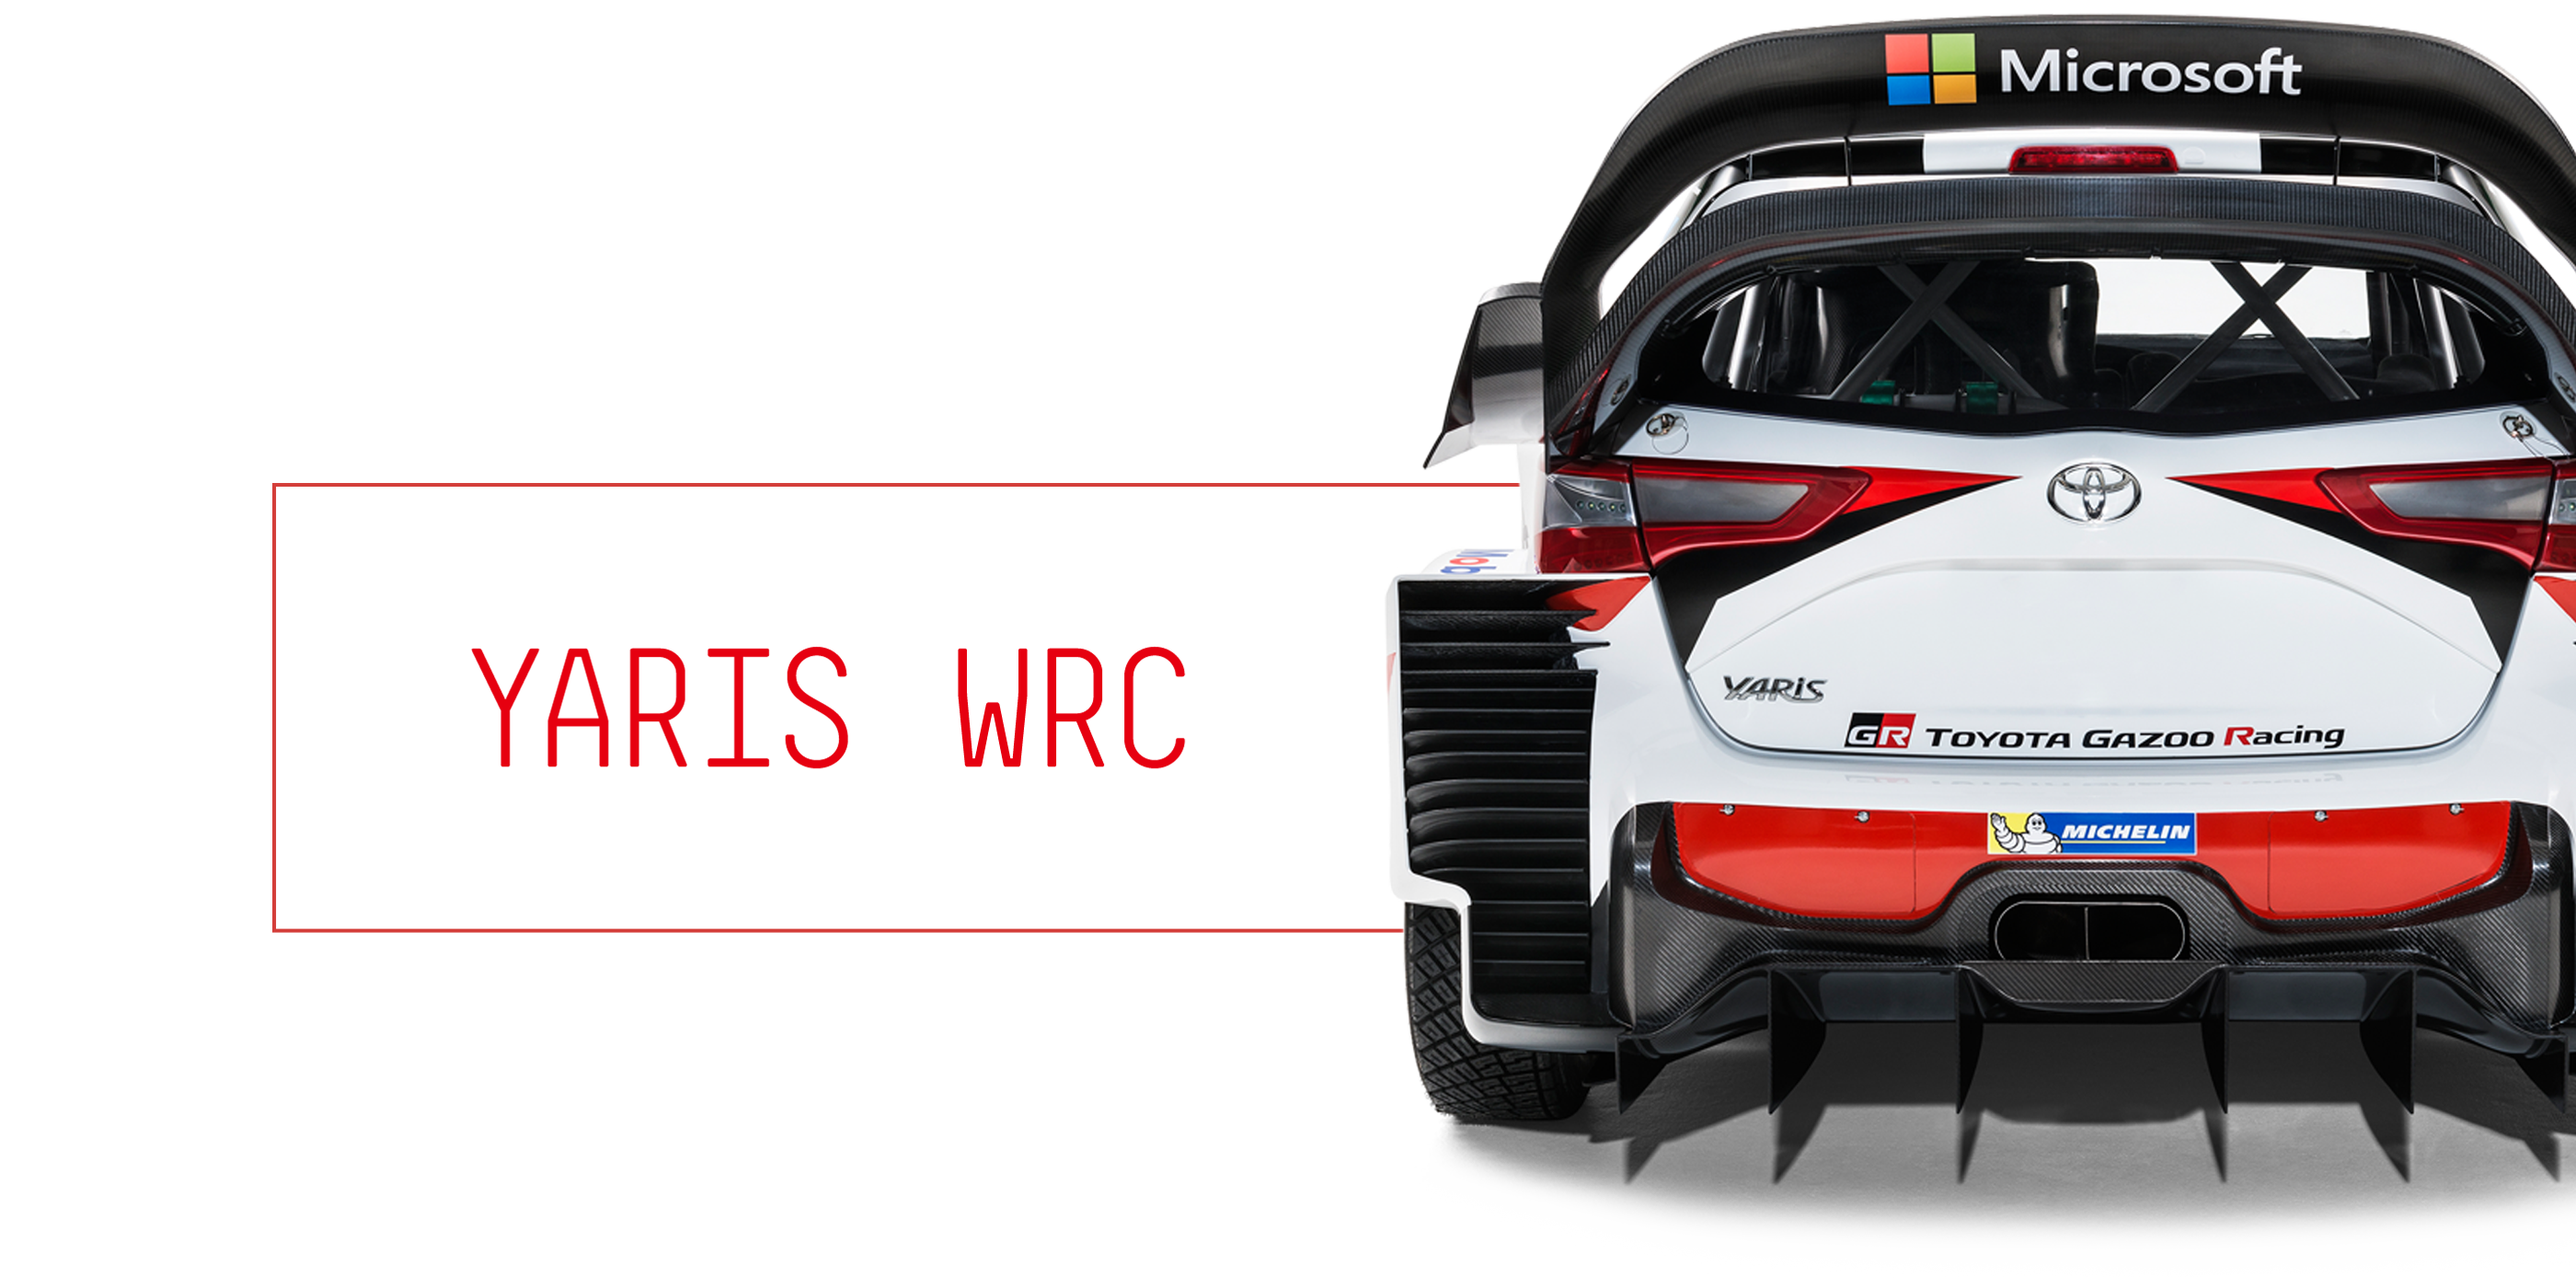 The Toyota Yaris Wrc Is A New Generation Rally Car Tuned To Near Perfection In Compliance With 2017 Fia World Technical Regulations